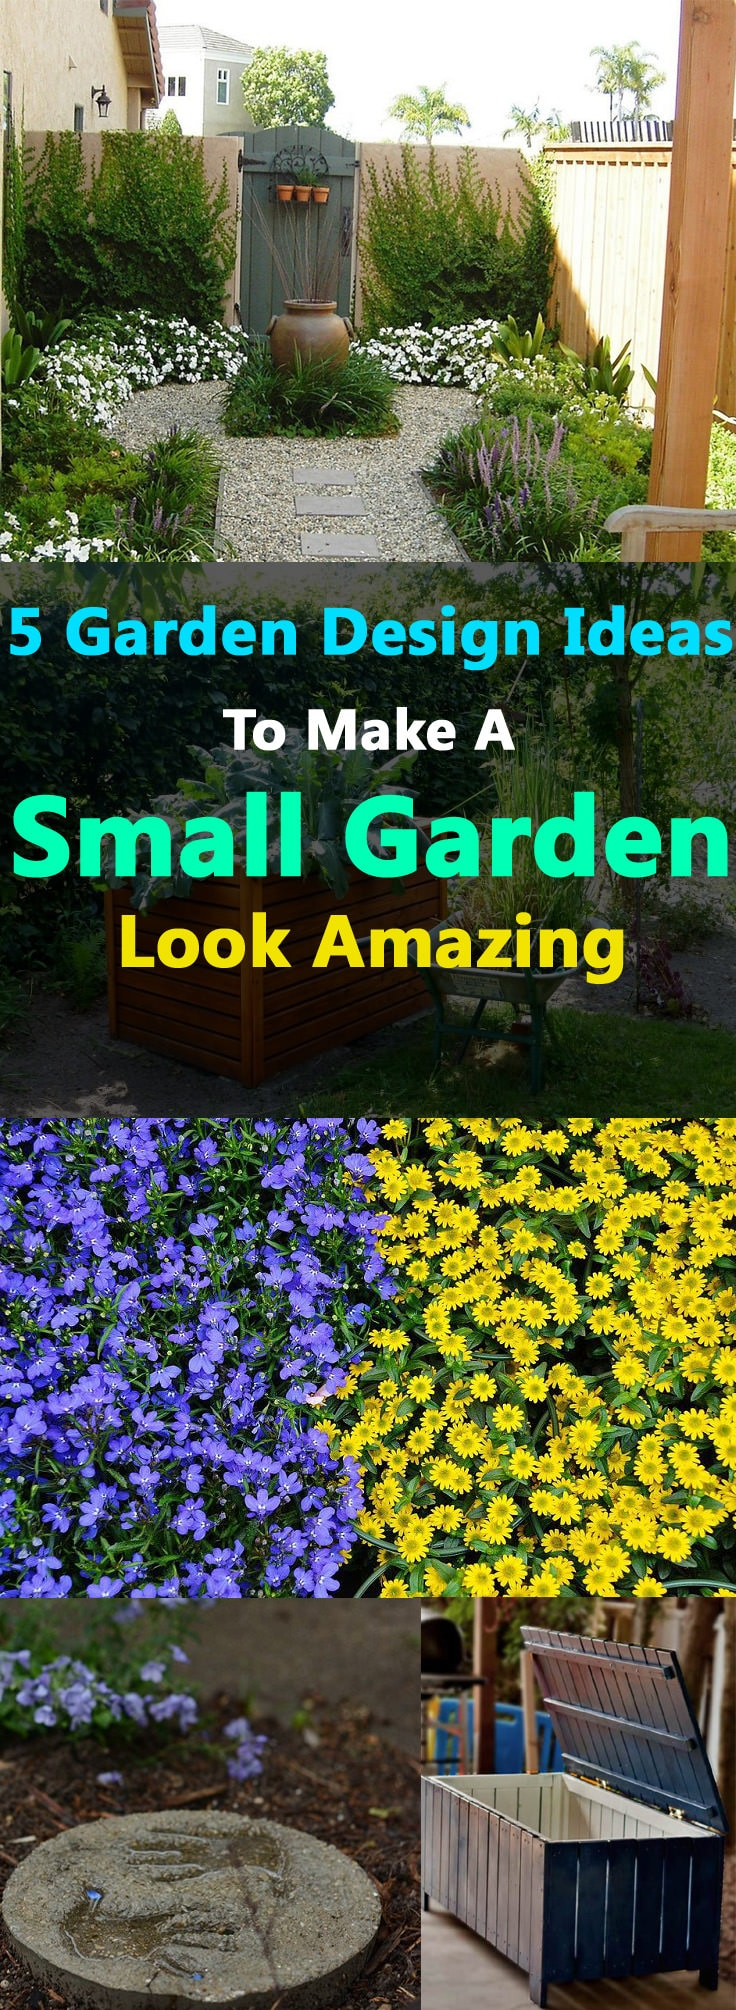 5 Garden Design Ideas To Make A Small Garden Look Amazing ...